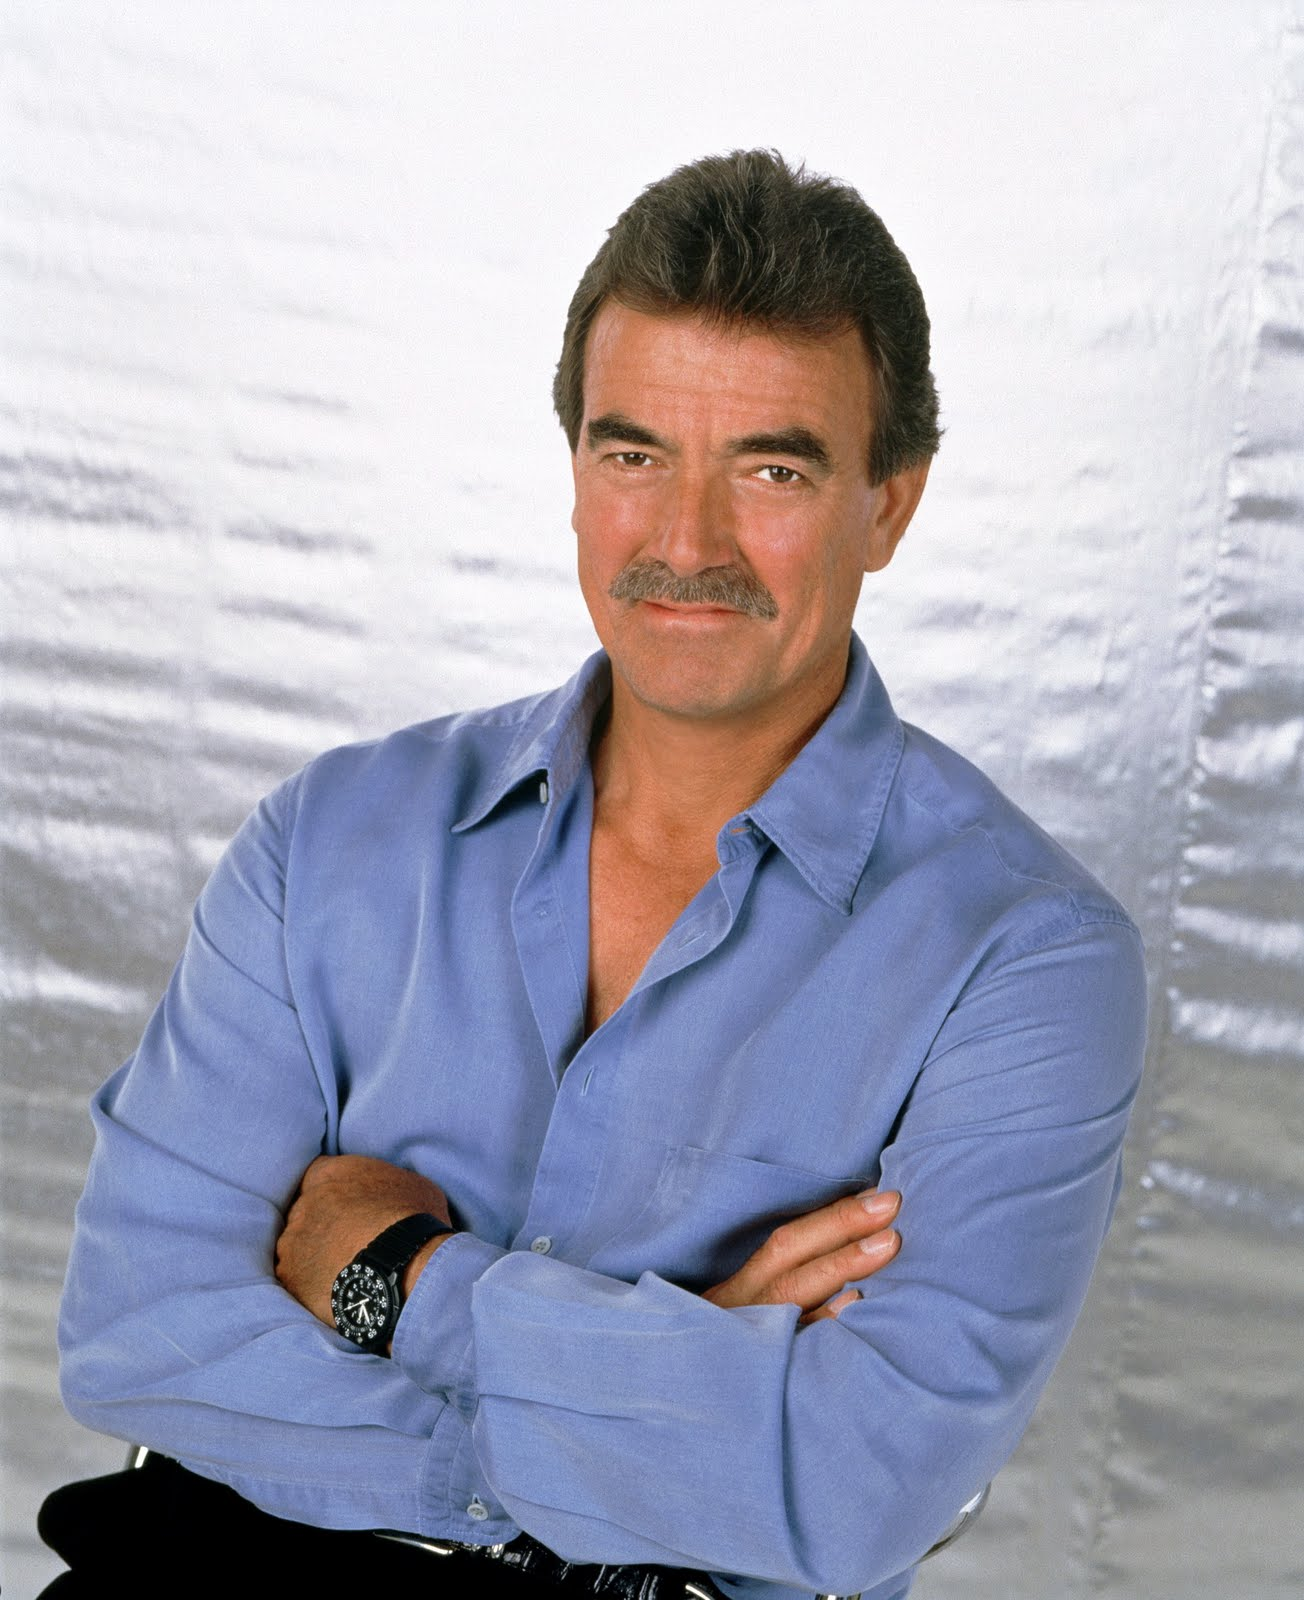 eric braeden leavingeric braeden filme, eric braeden, eric braeden net worth, eric braeden wife, eric braeden salary, eric braeden salary per episode, eric braeden twitter, eric braeden bio, eric braeden leaving y&r, eric braeden mort, eric braeden titanic, eric braeden house, eric braeden family, eric braeden leaving, eric braeden contract, eric braeden et sa femme, eric braeden fortune, eric braeden wife dale russell, eric braeden leaving y&r 2016, eric braeden married